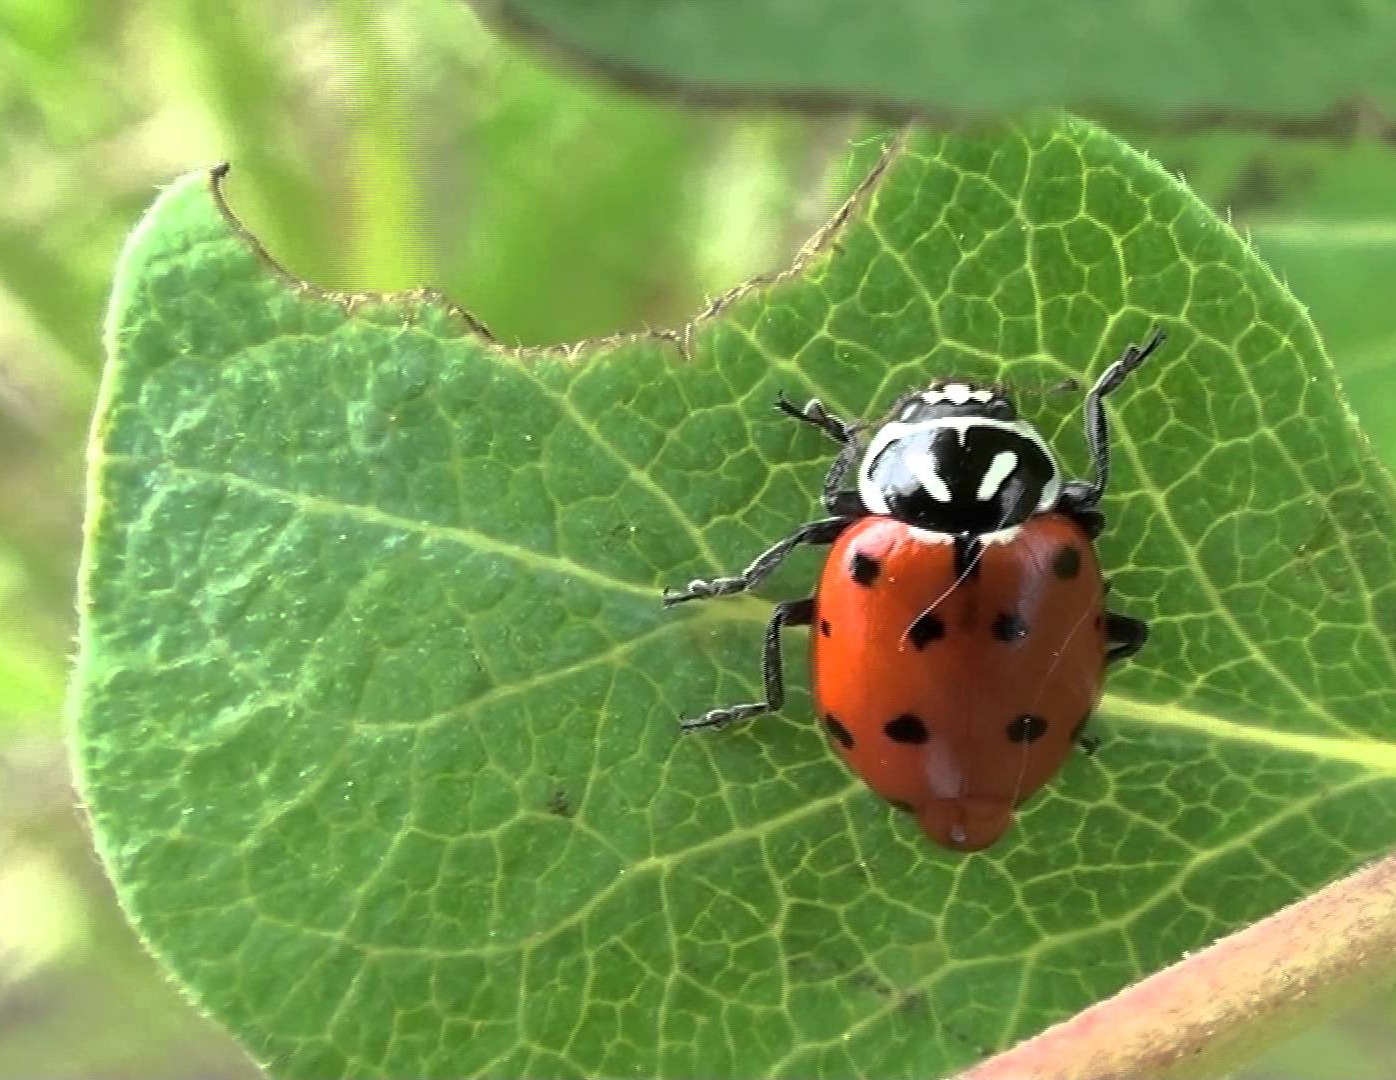 Stink bugs and lady beetles - Metro Parks - Central Ohio